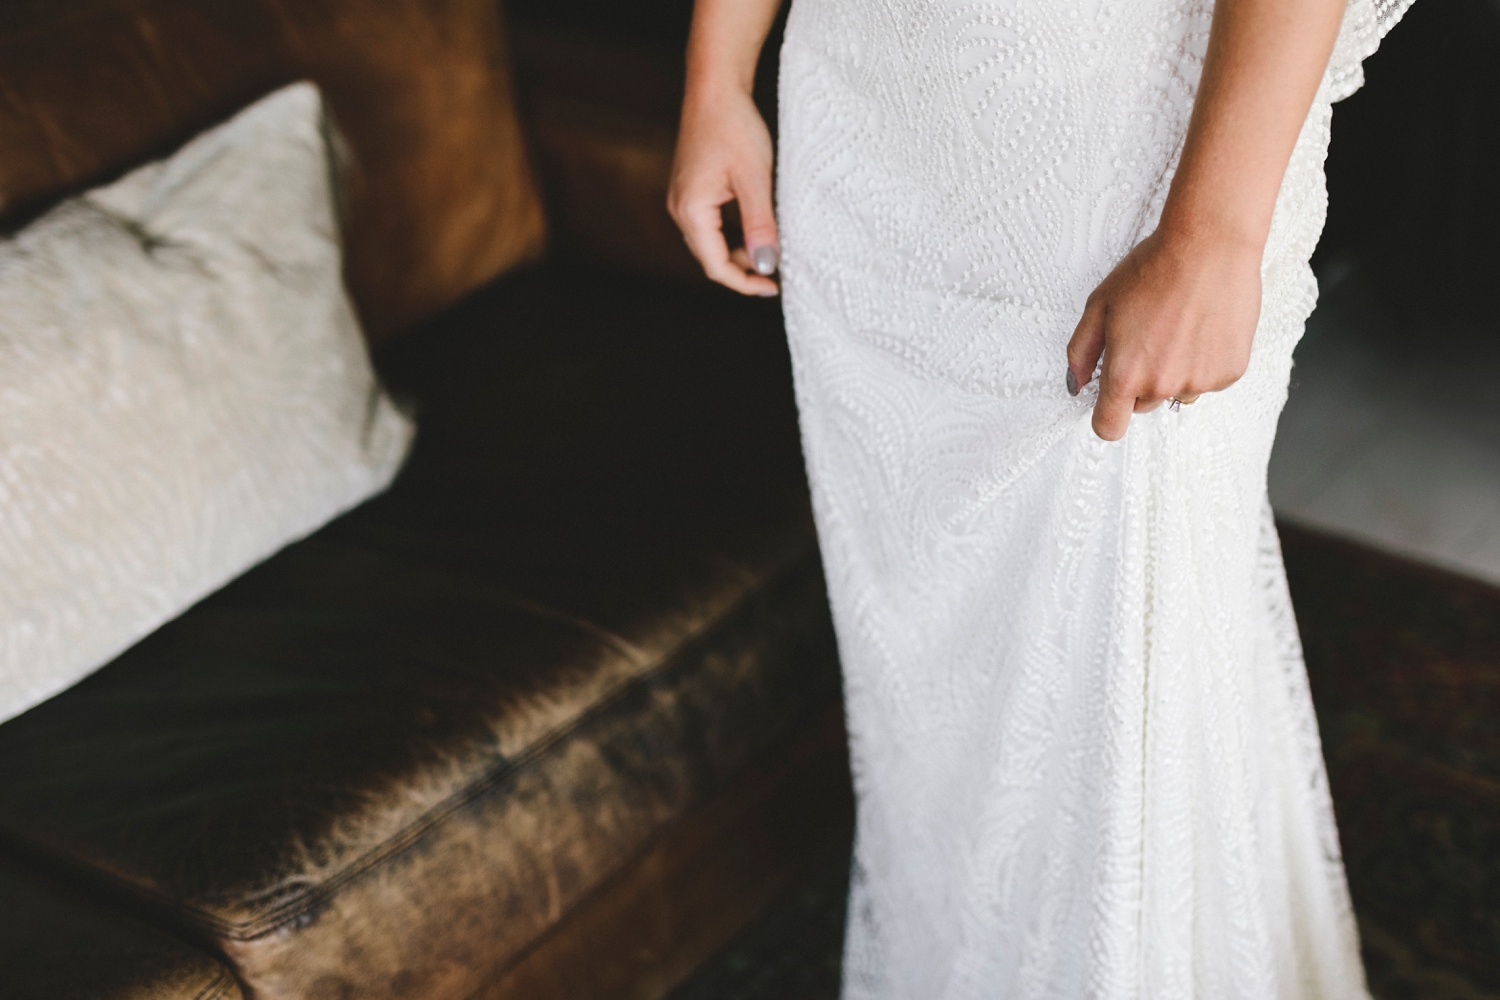 charlie_ray_photography_runaway_romance_elopement_emily_moon_plett_simple_boho_wedding_south_africa_bohemium_0035.jpg